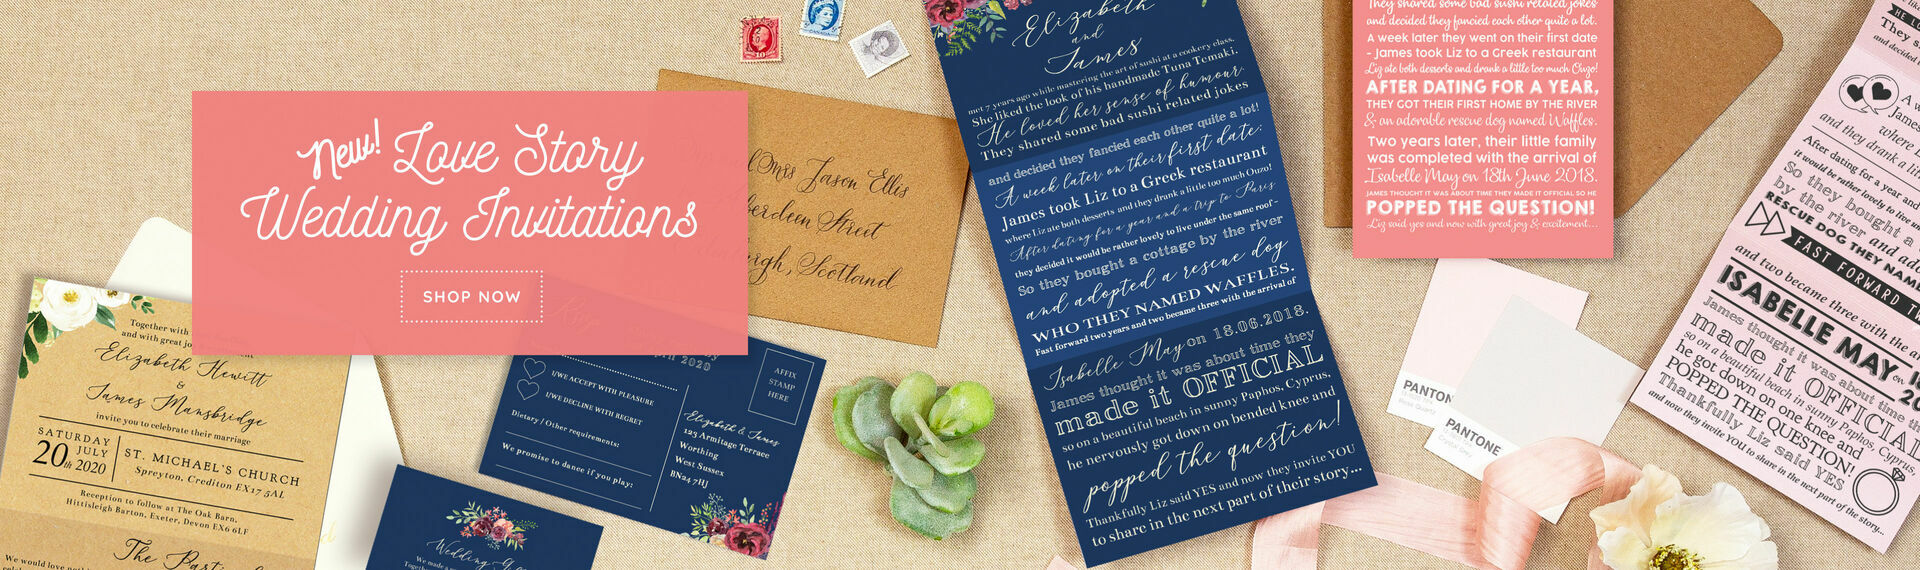 Love Story Wedding Invitations